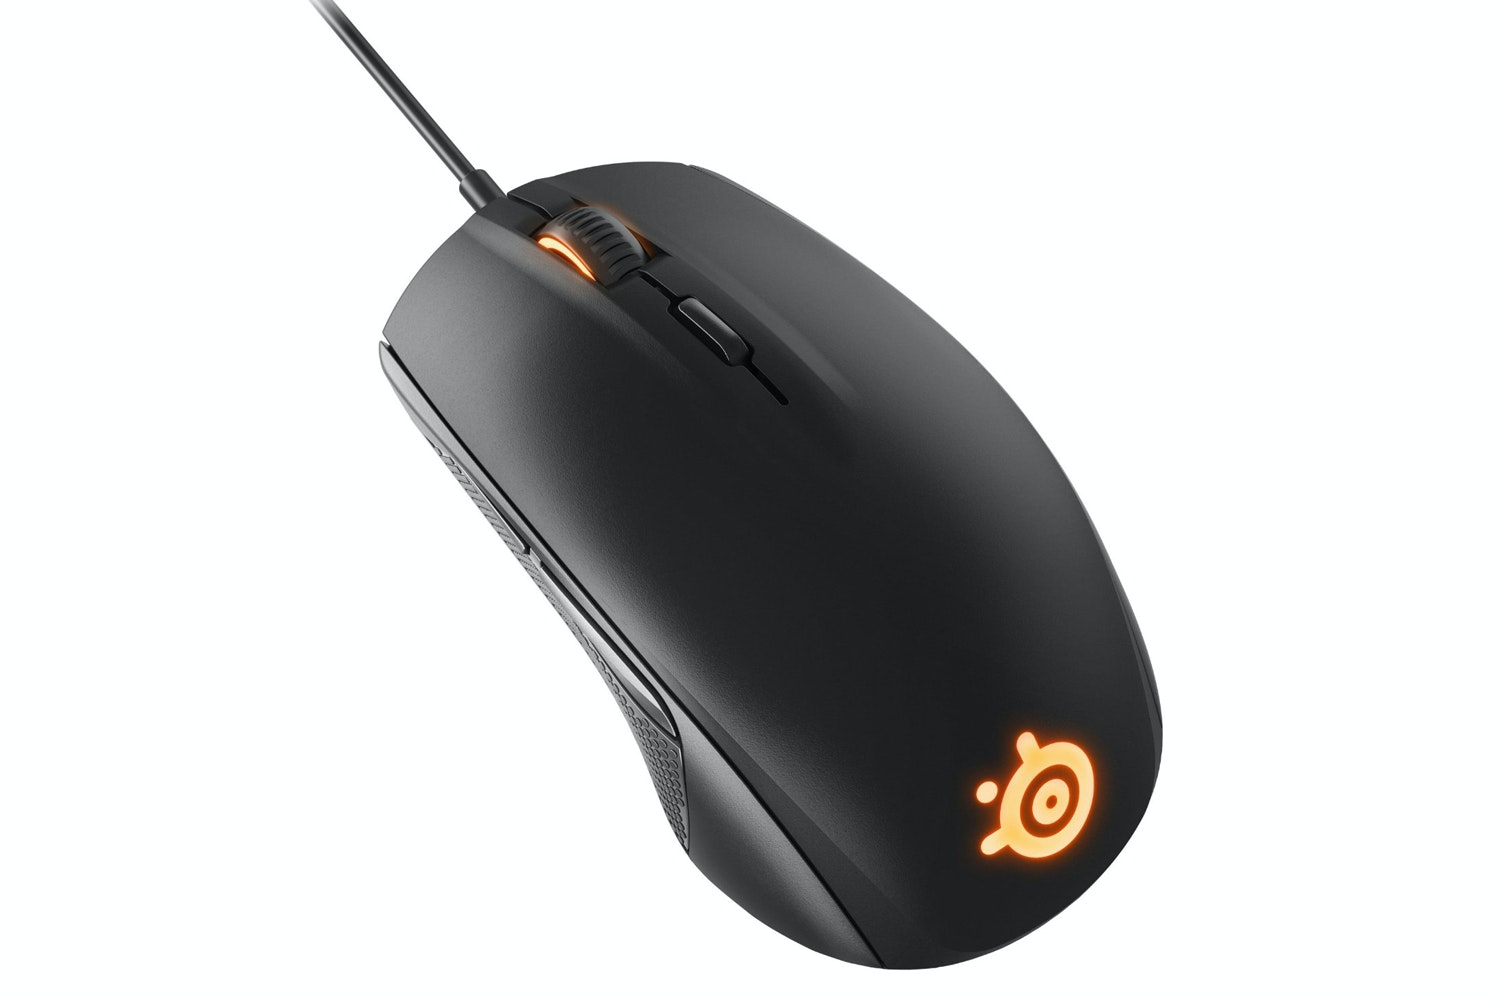 SteelSeries Rival 100 Optical Gaming Mouse | Black